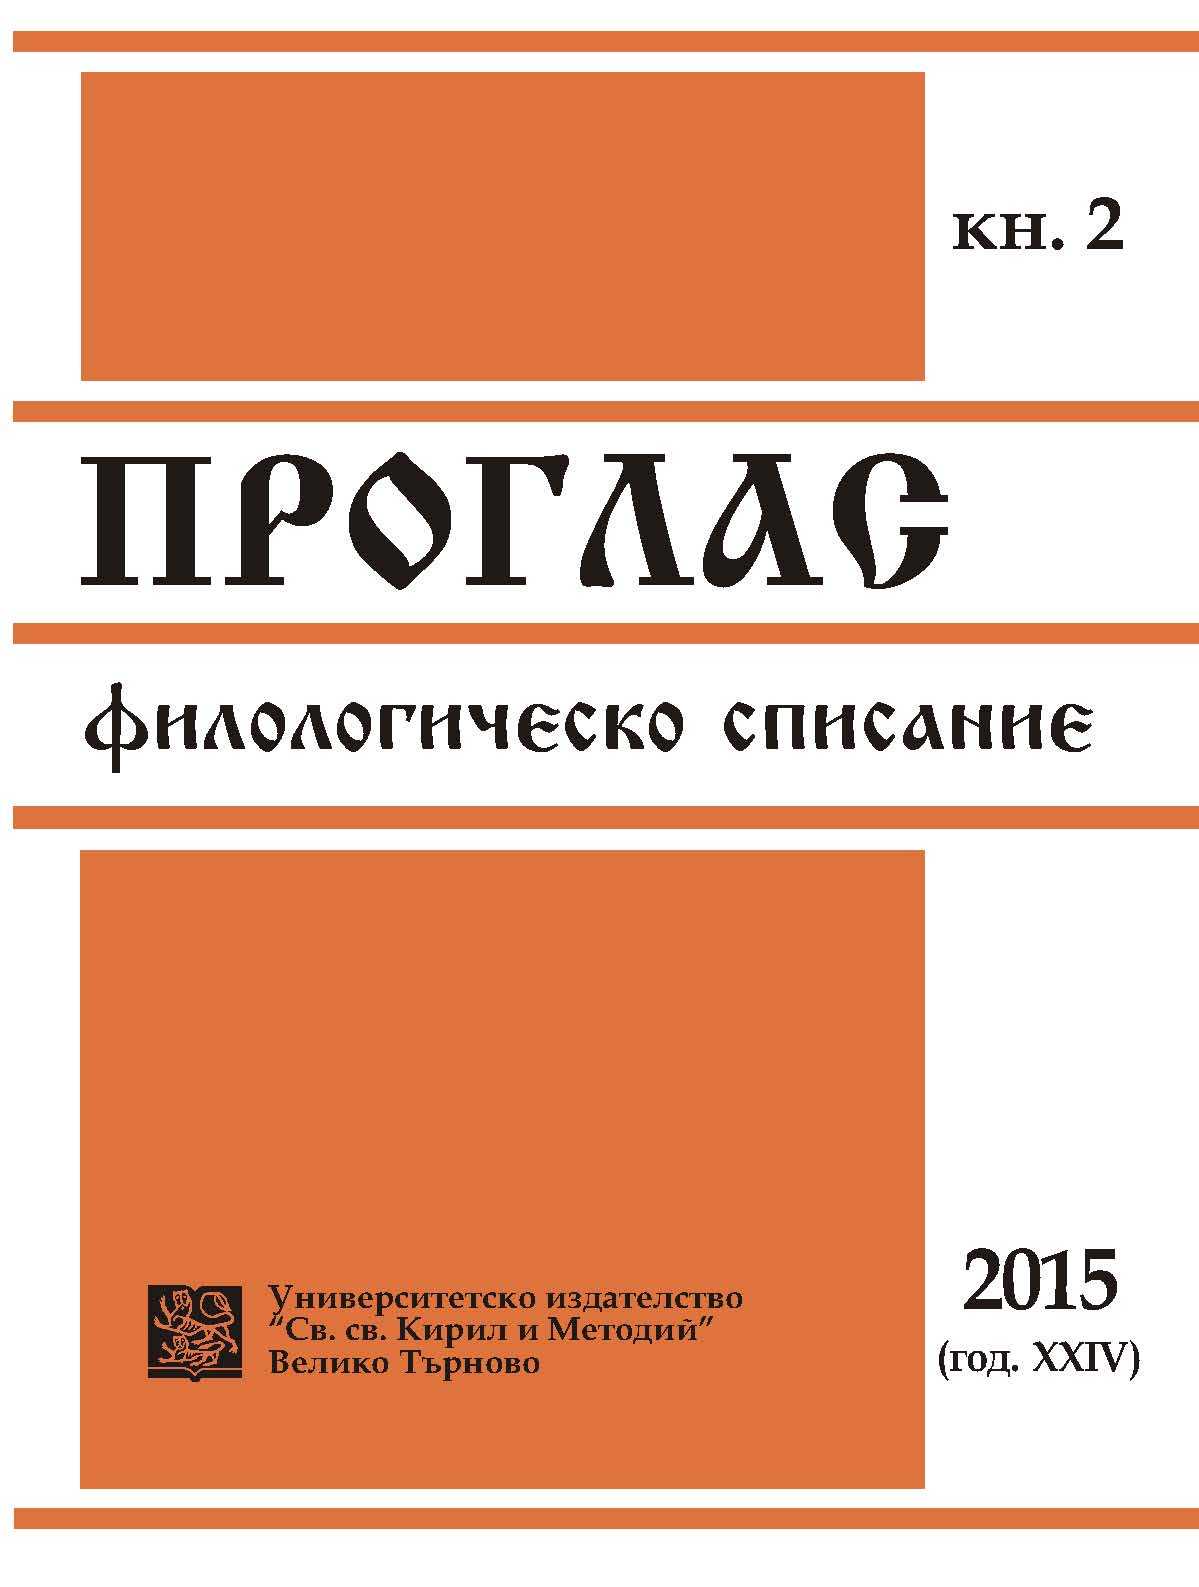 Mavro Orbini's The Realm of the Slavs, Sava Vladislavich's Russian Translation and Related Research Cover Image